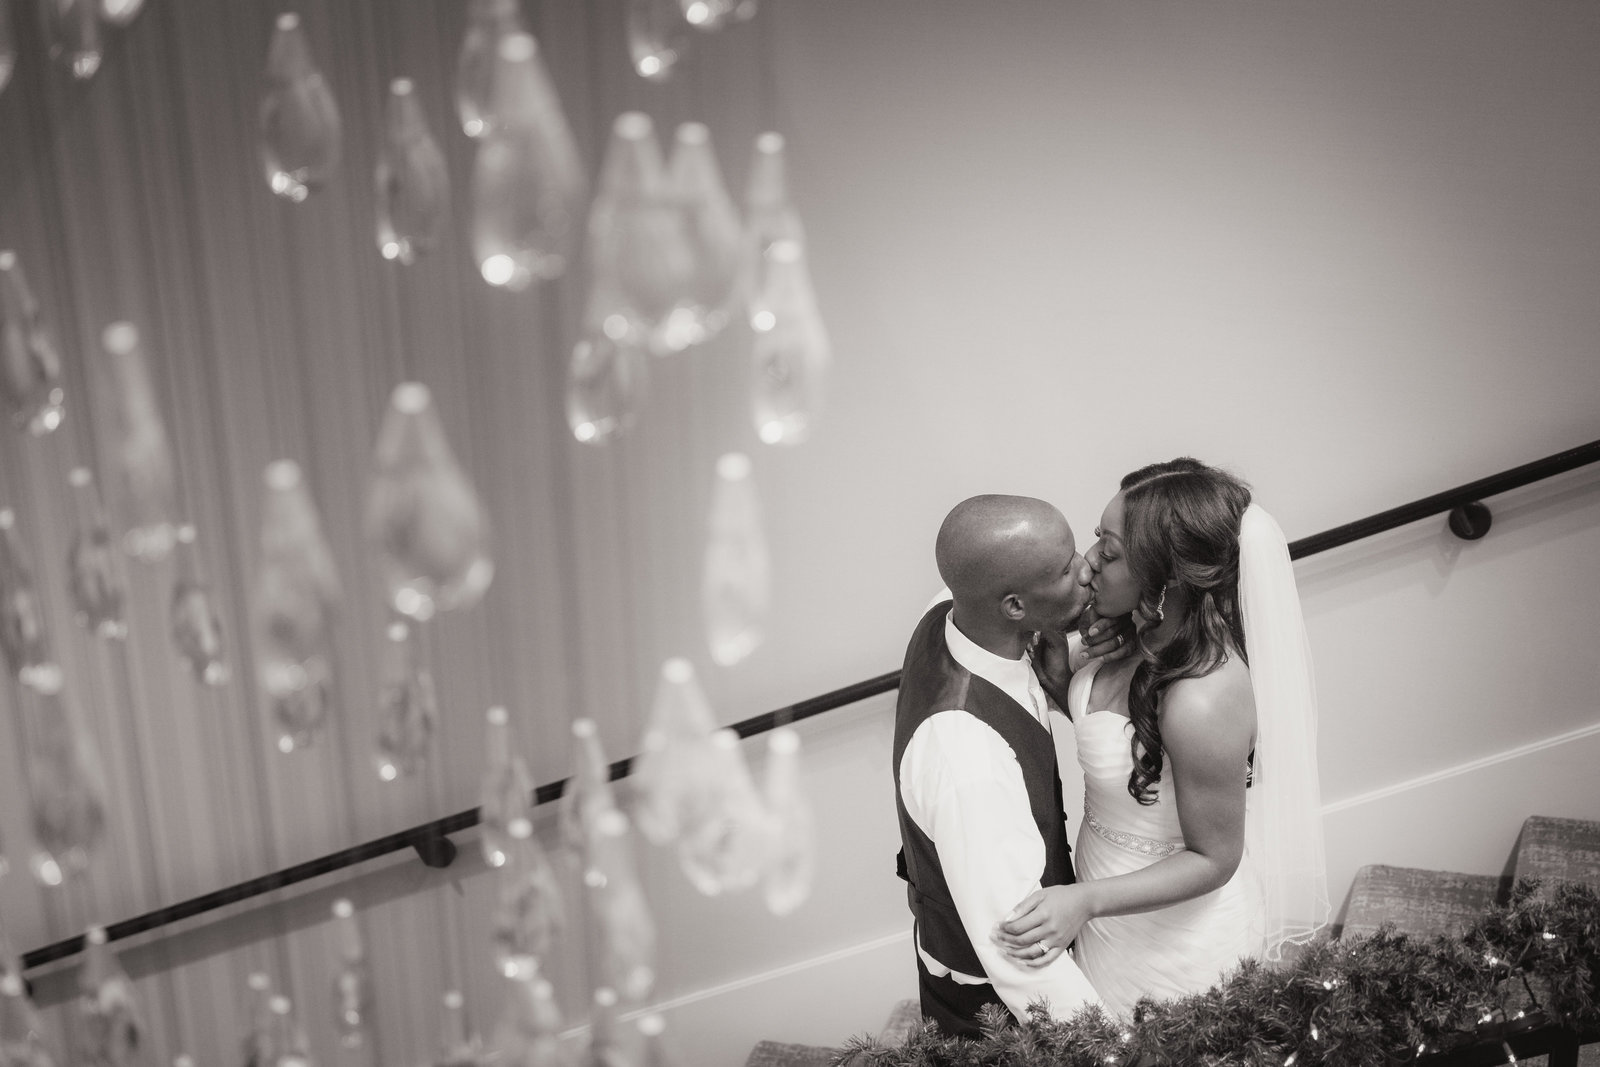 Artistic black and white portrait of bride and groom